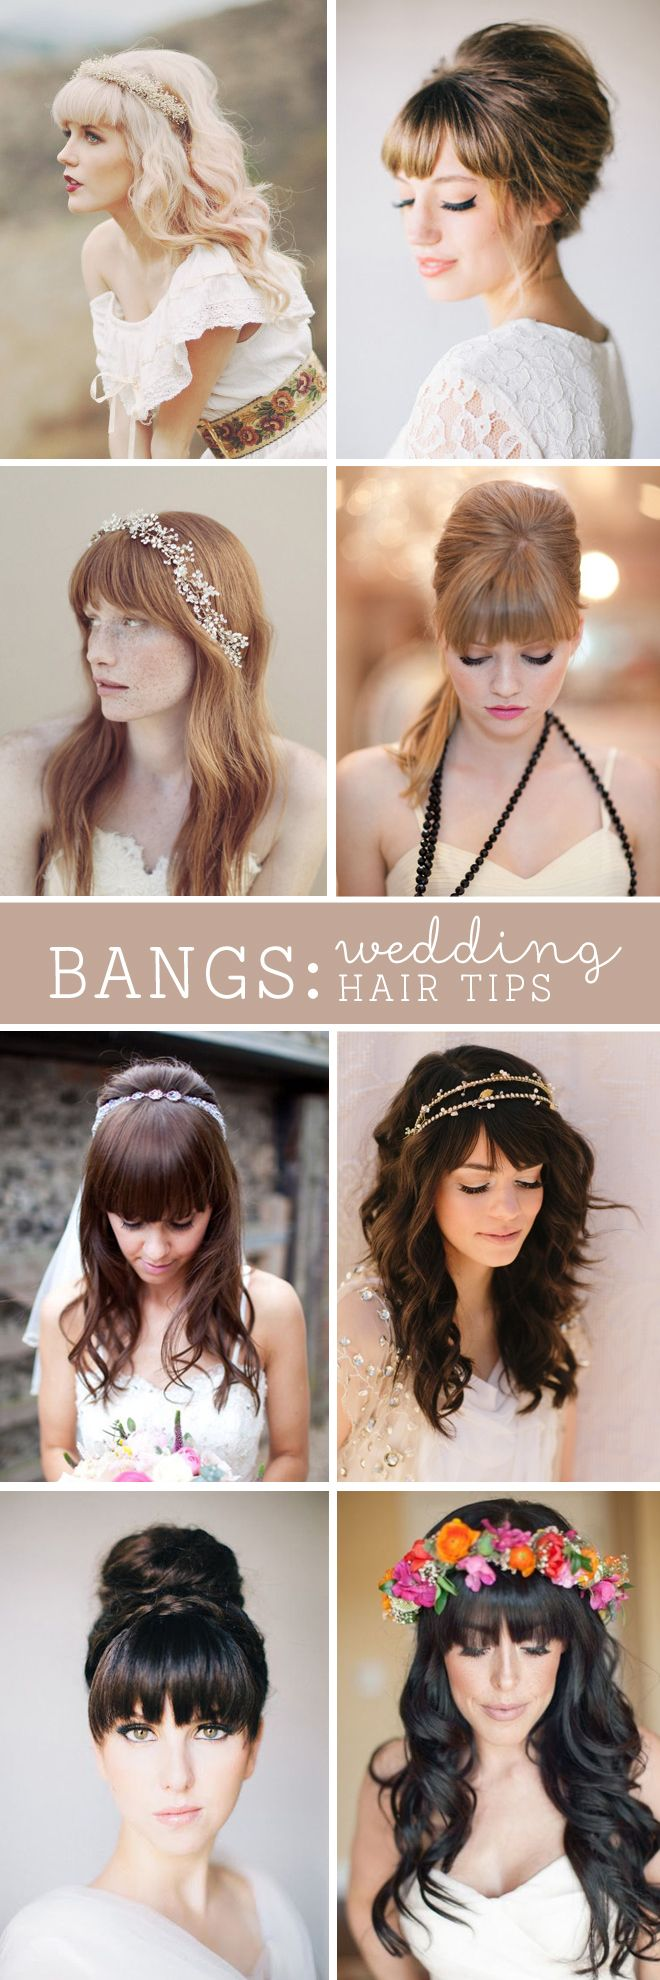 love the look of full bangs with a beautiful bridal hairstyle!  ~  we ❤ this! moncheribridals.com